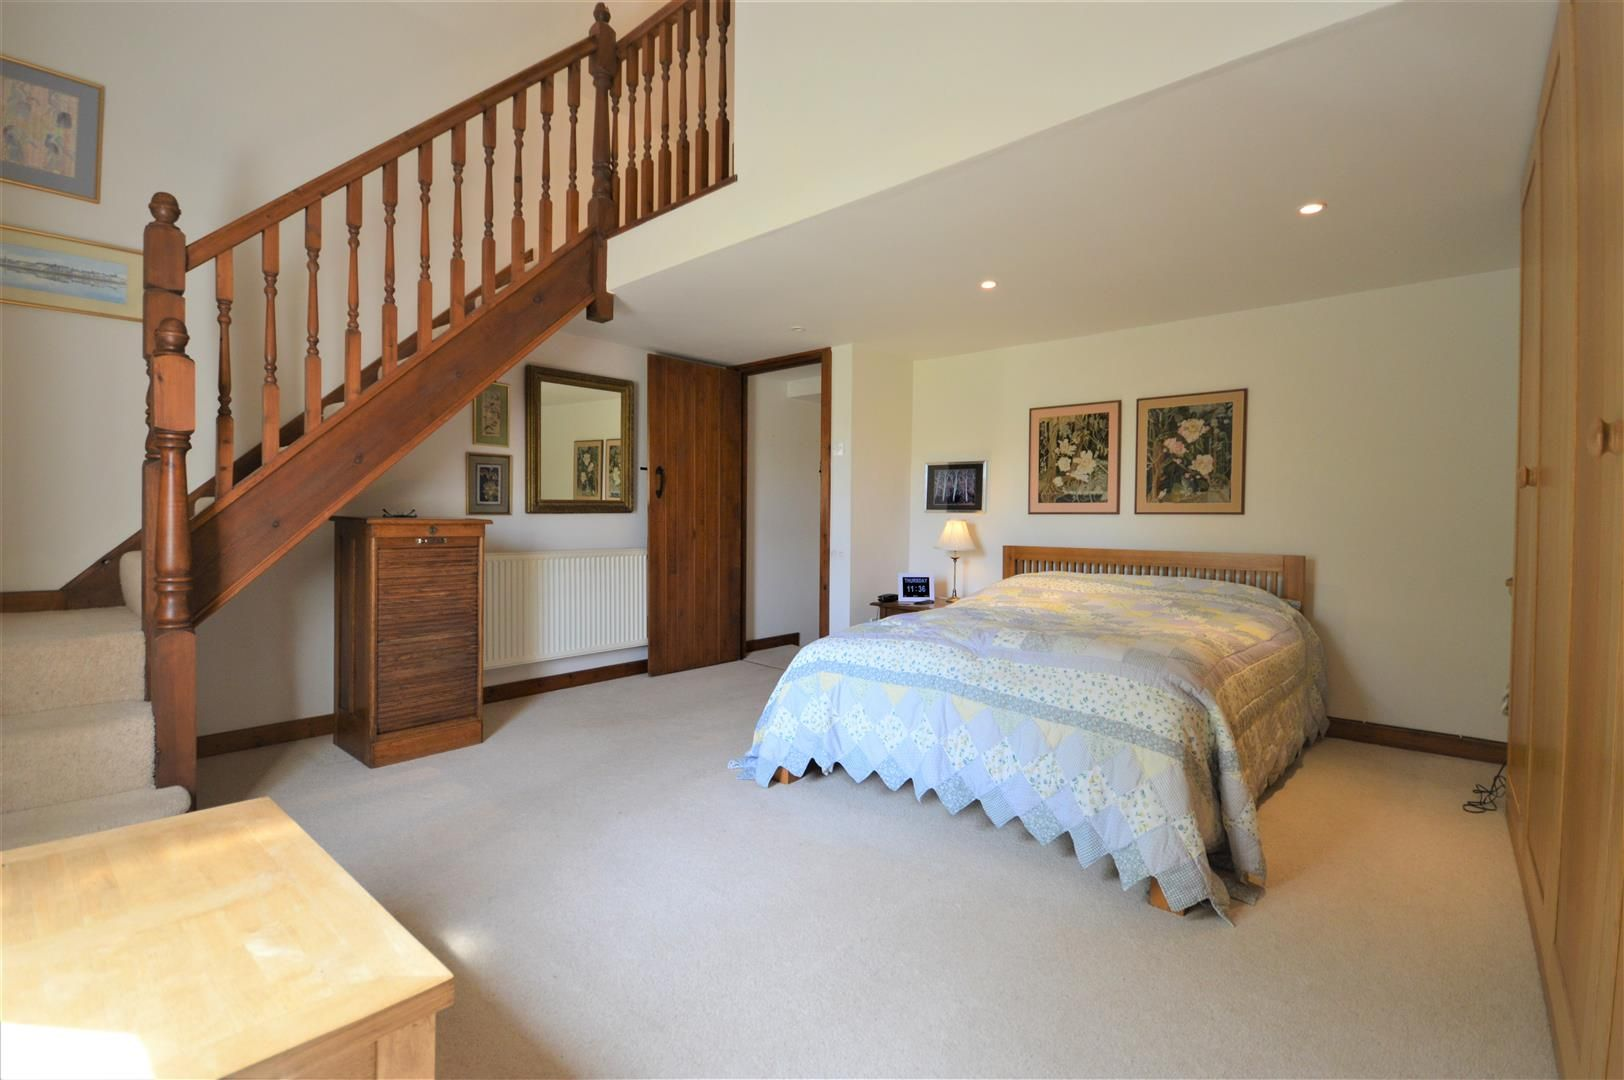 3 bed barn-conversion for sale in Stoke Prior  - Property Image 12